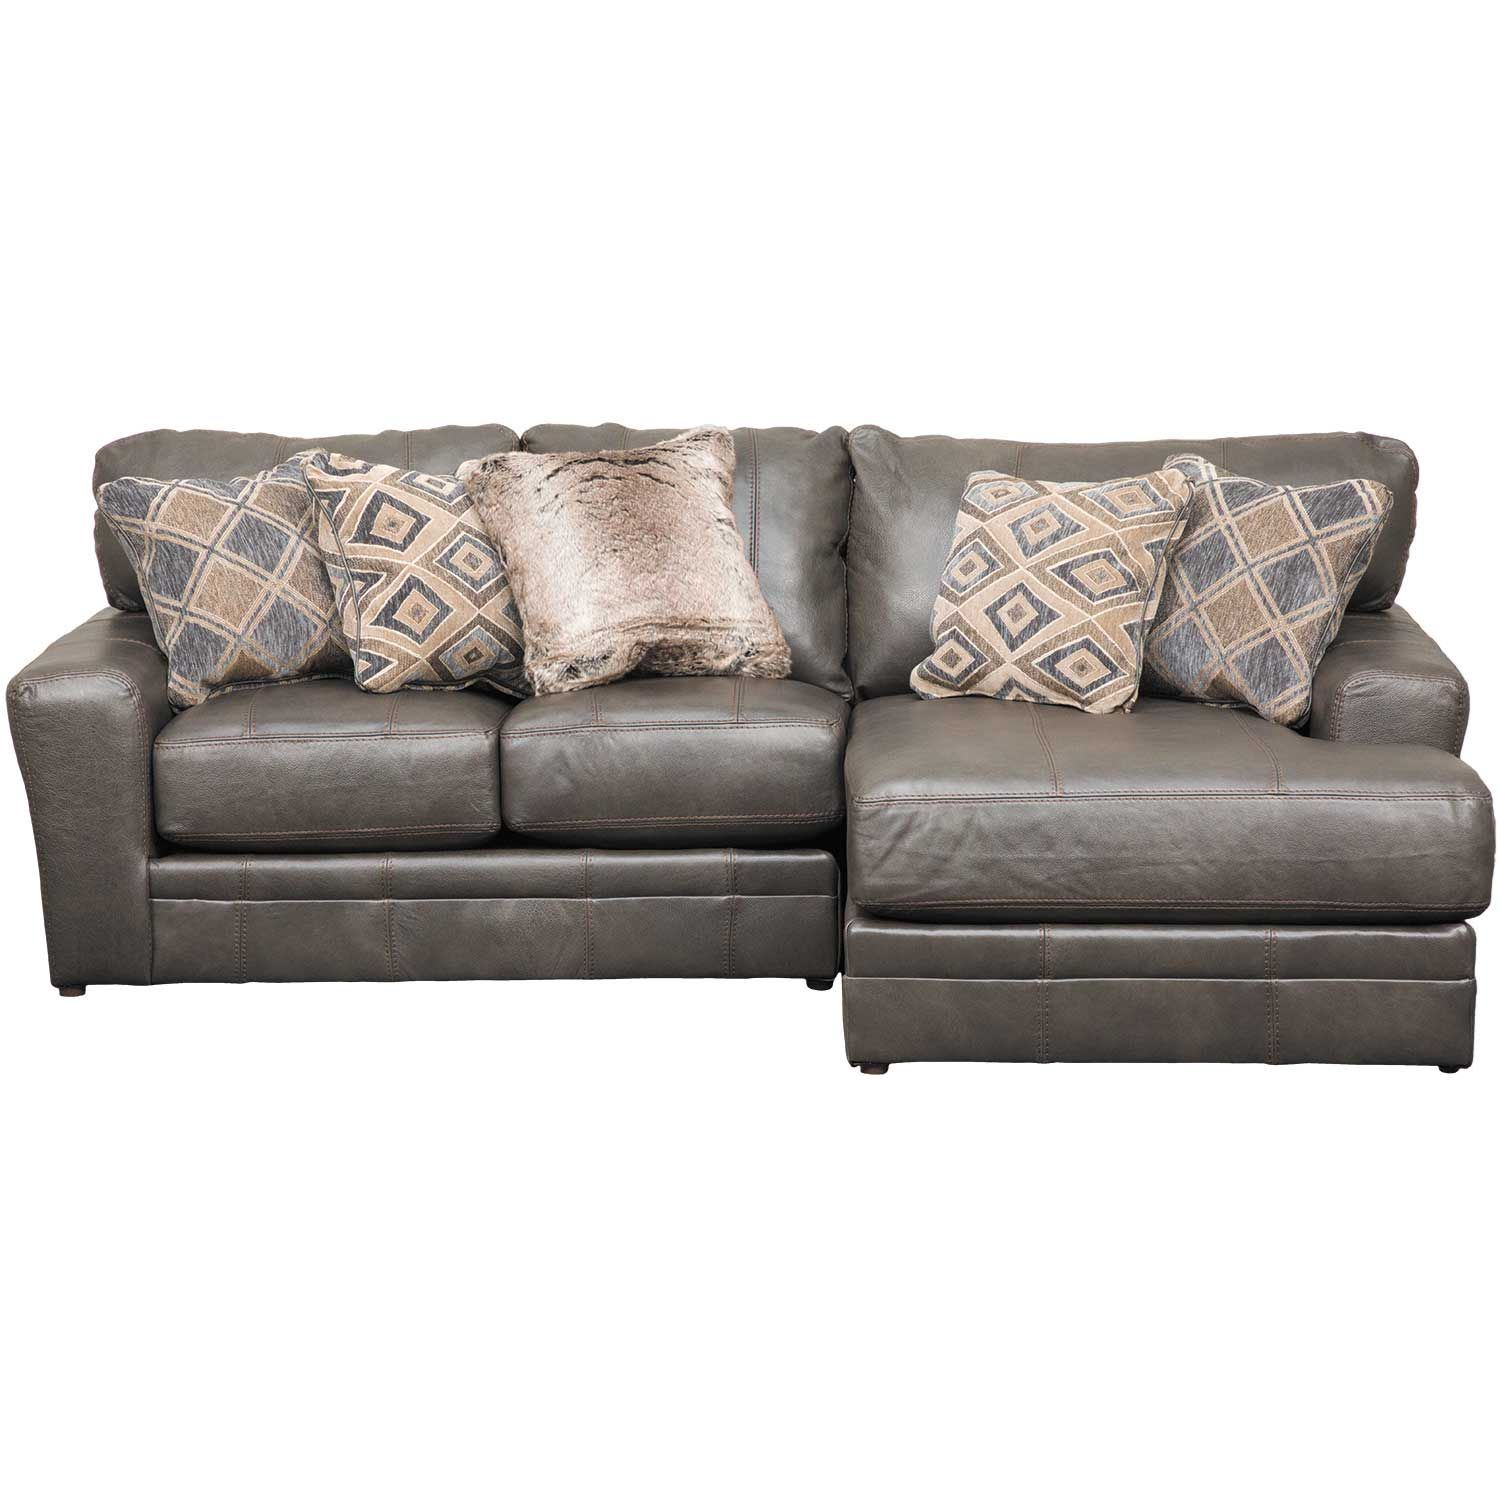 Denali 2 Piece Italian Leather Sectional with RAF Chaise